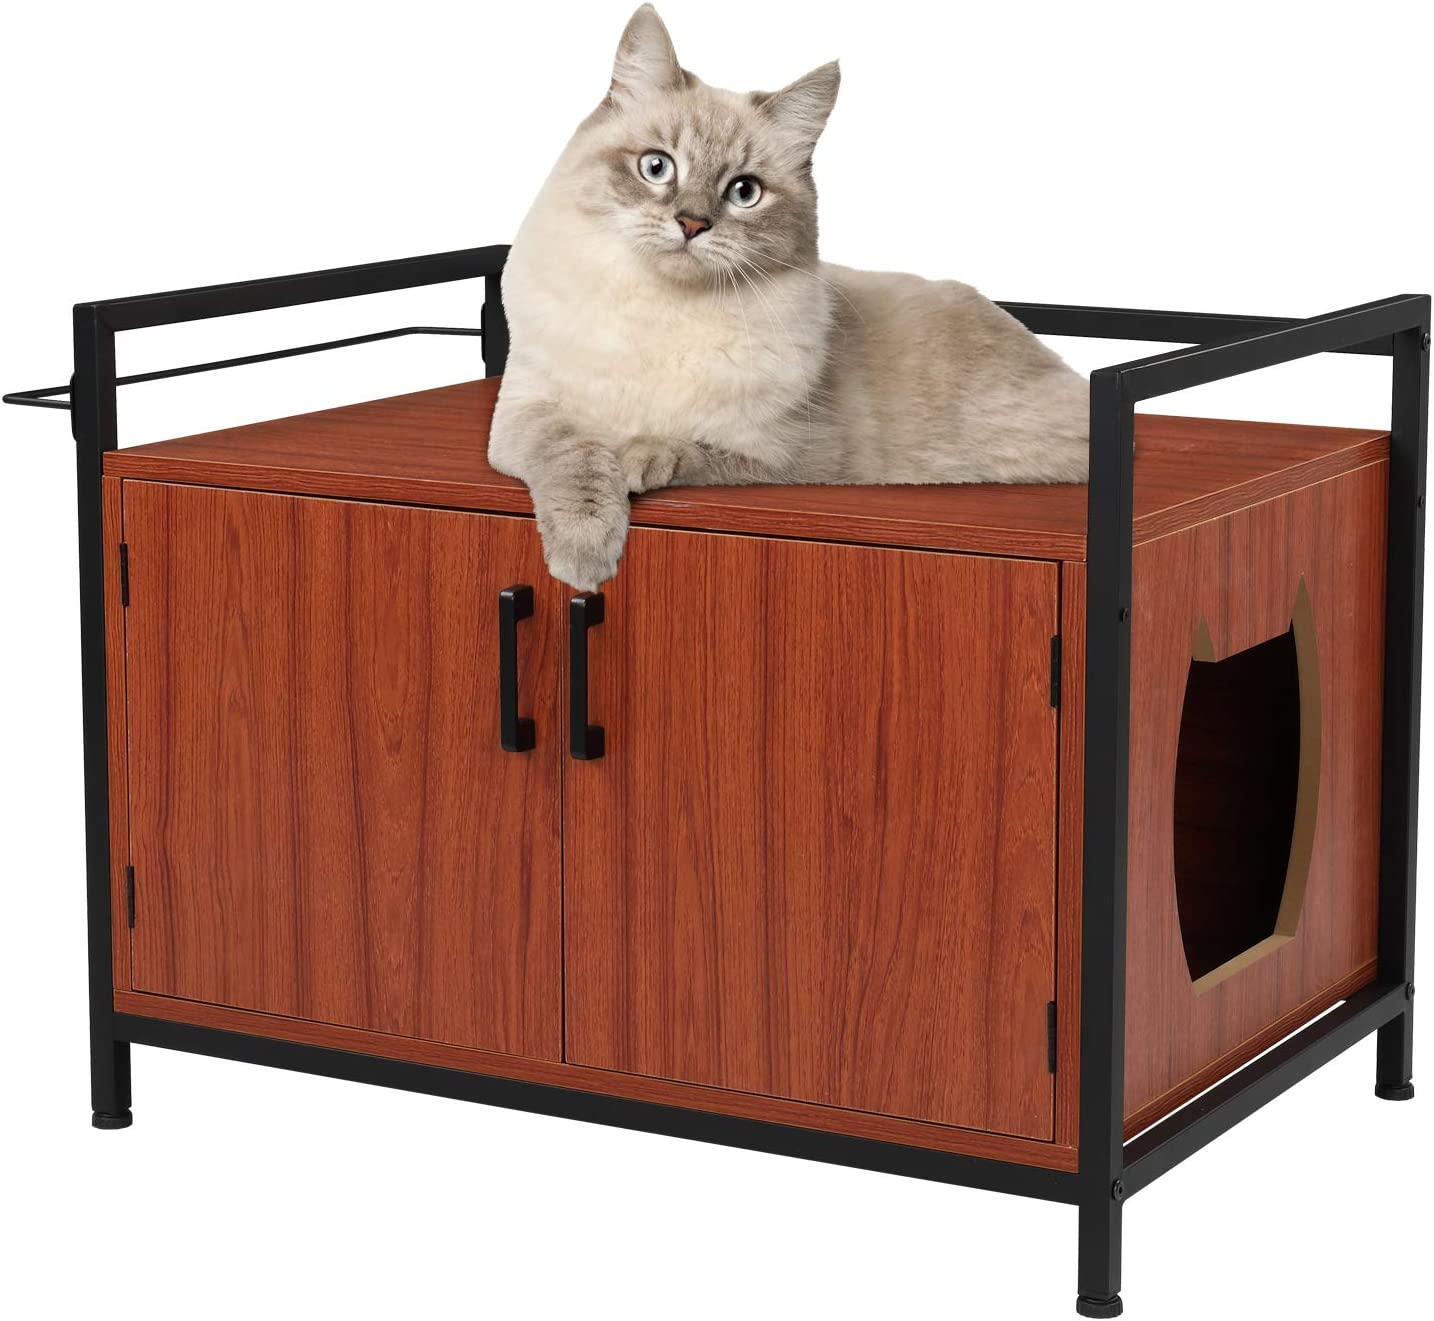 Bonnlo Nightstand Cat Litter Box Doors House Two Kitty Daily bargain sale New products, world's highest quality popular! Enclosure